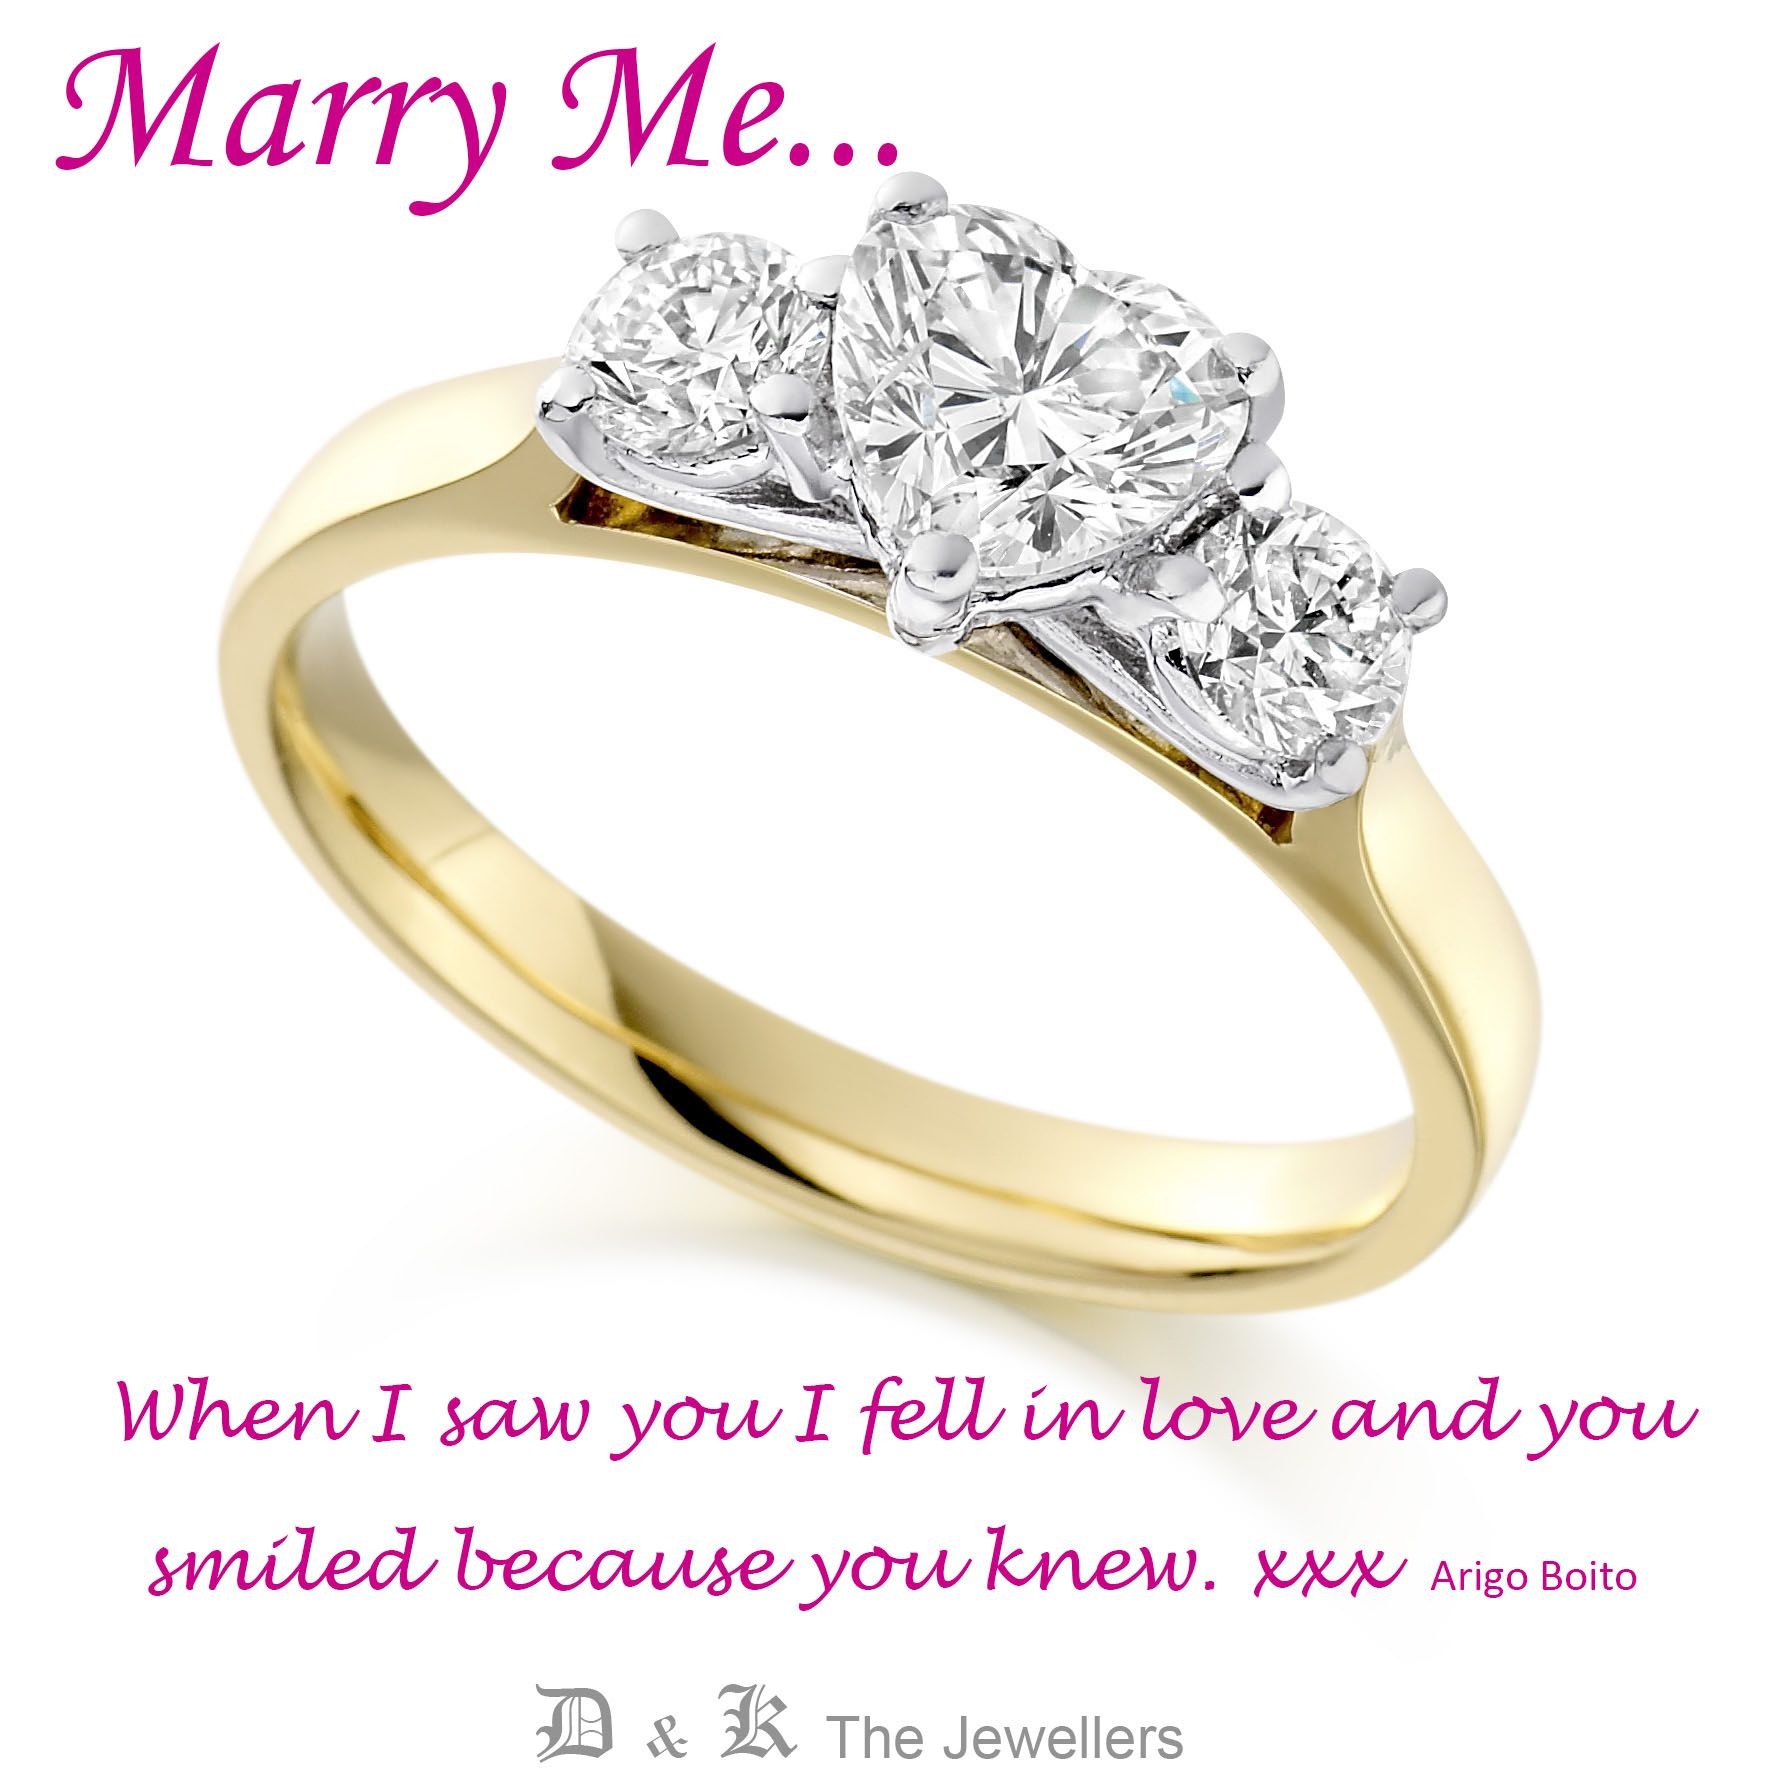 Heart Shape Diamond Engagement Rings Are For Romatic Spirited Lady This Heart  Cut Diamond Is